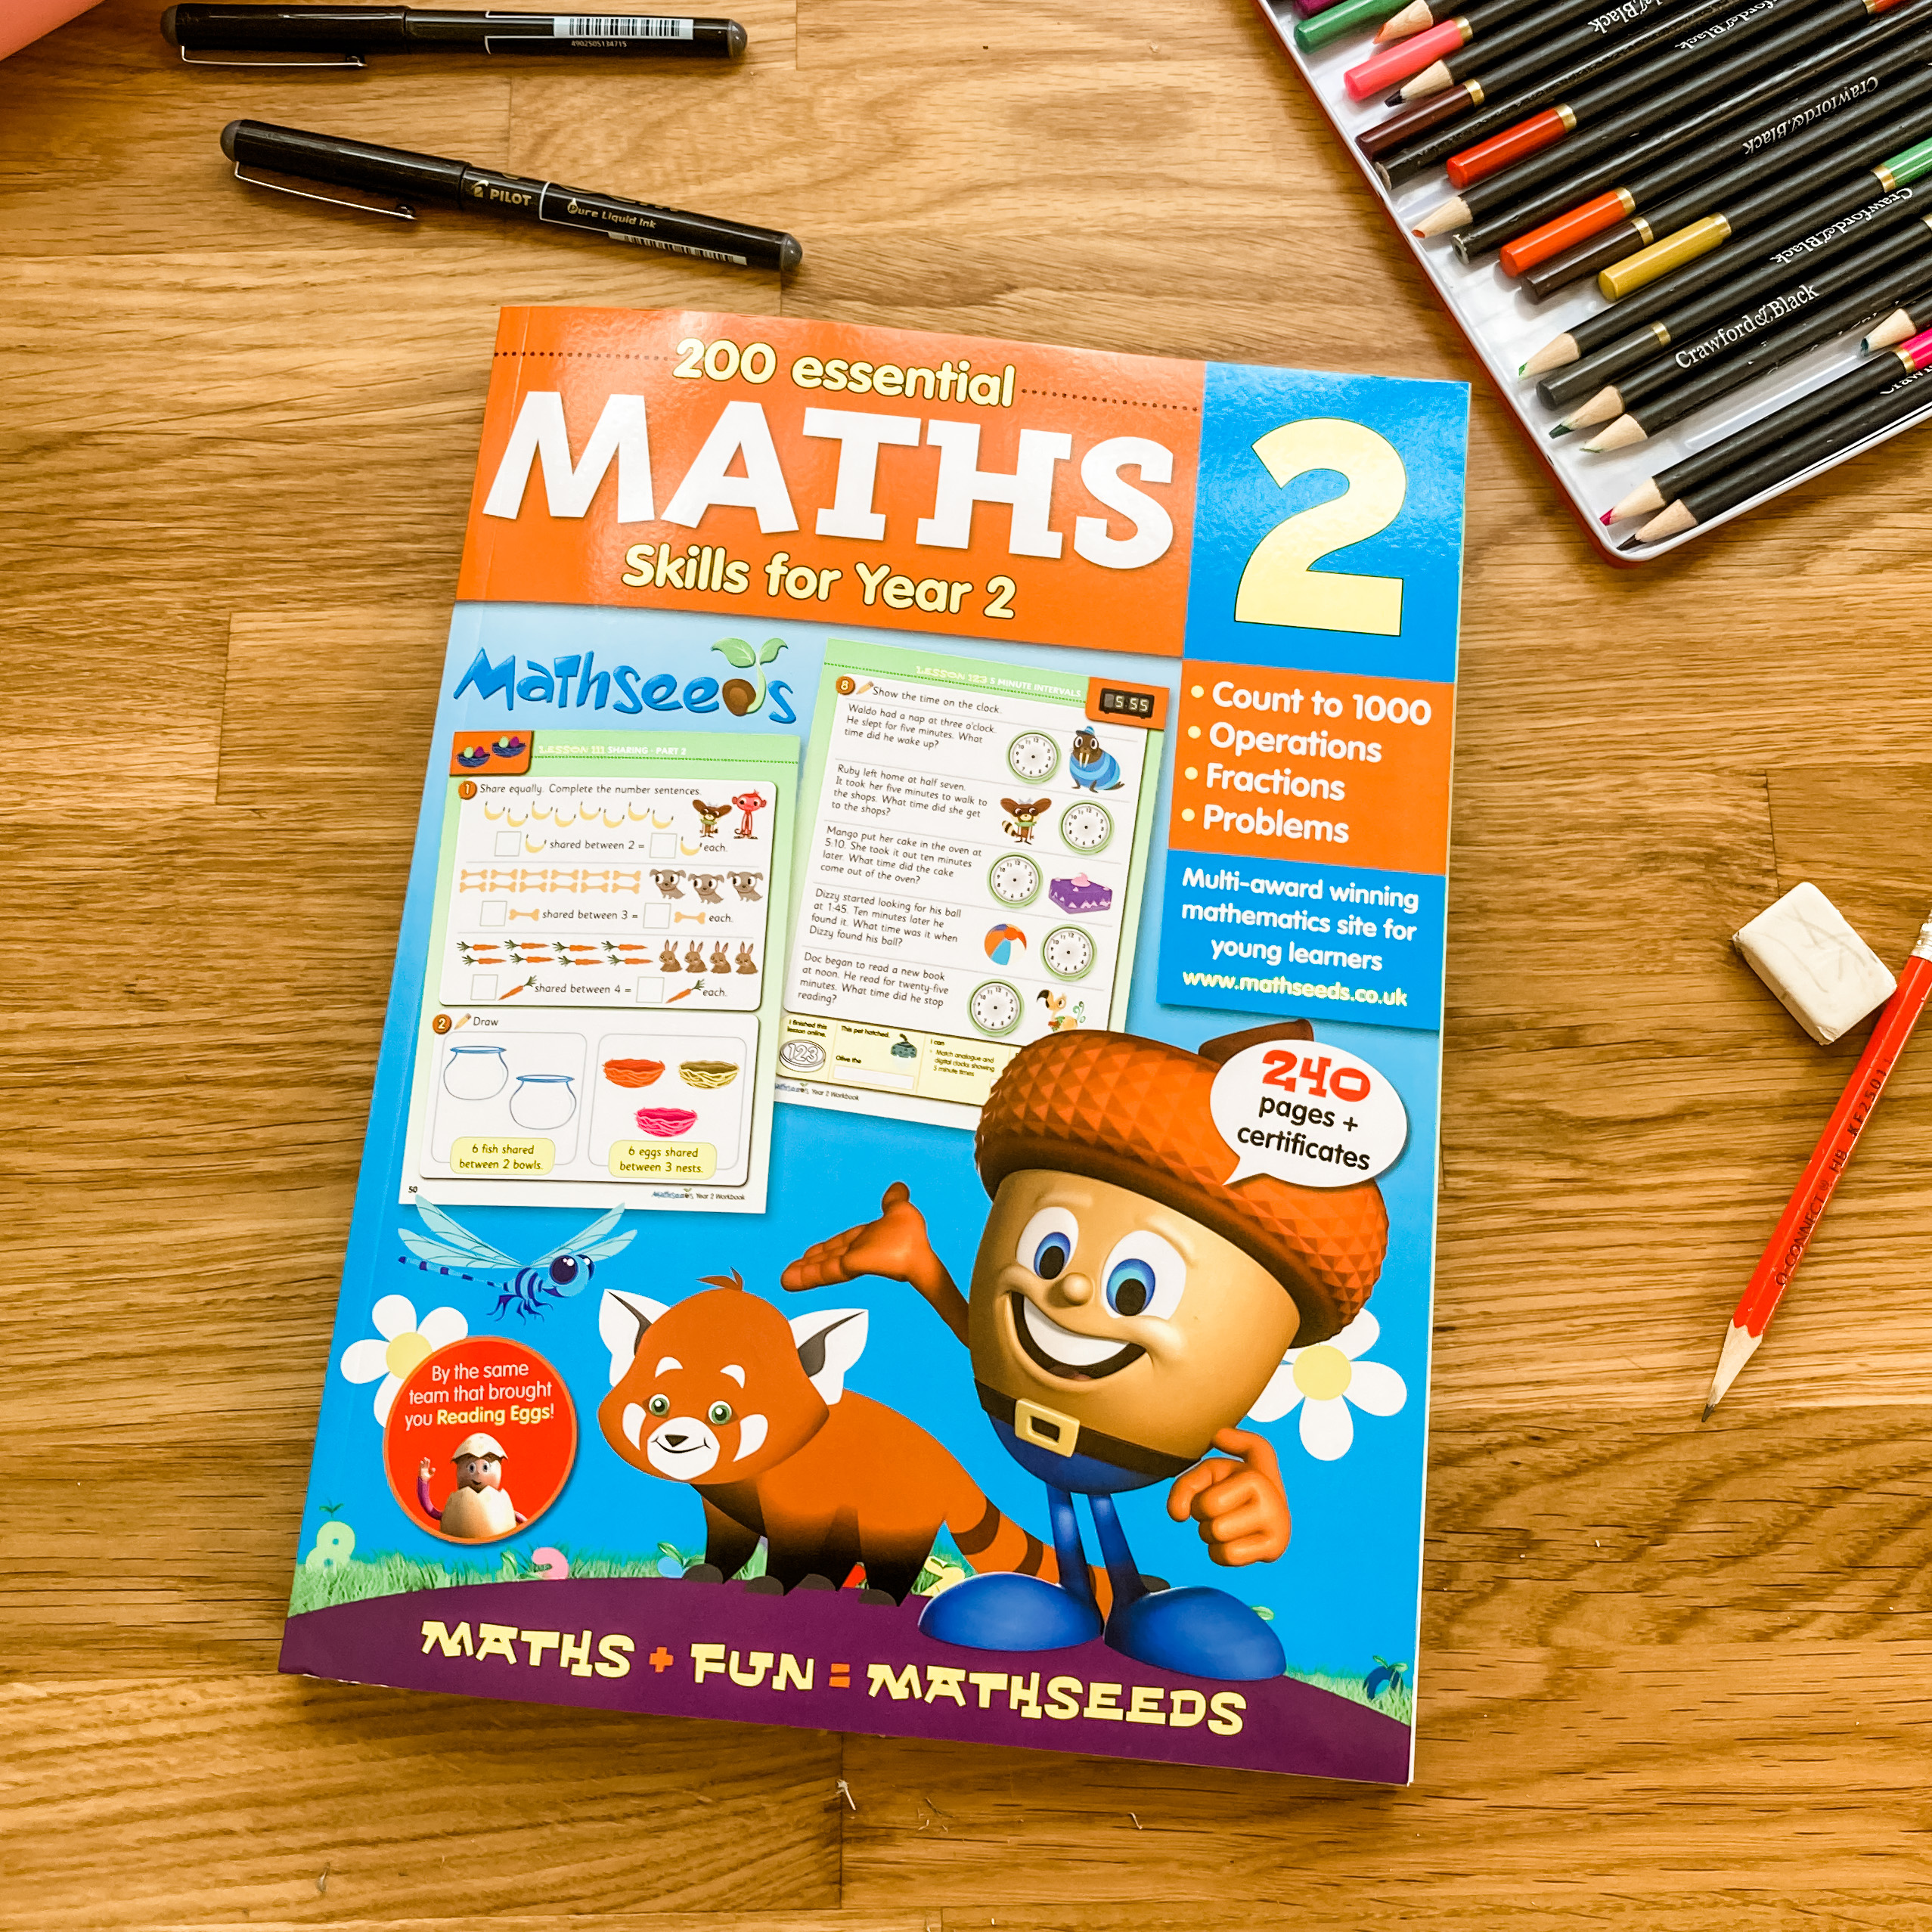 Maths for year 2 - mathseeds workbook review